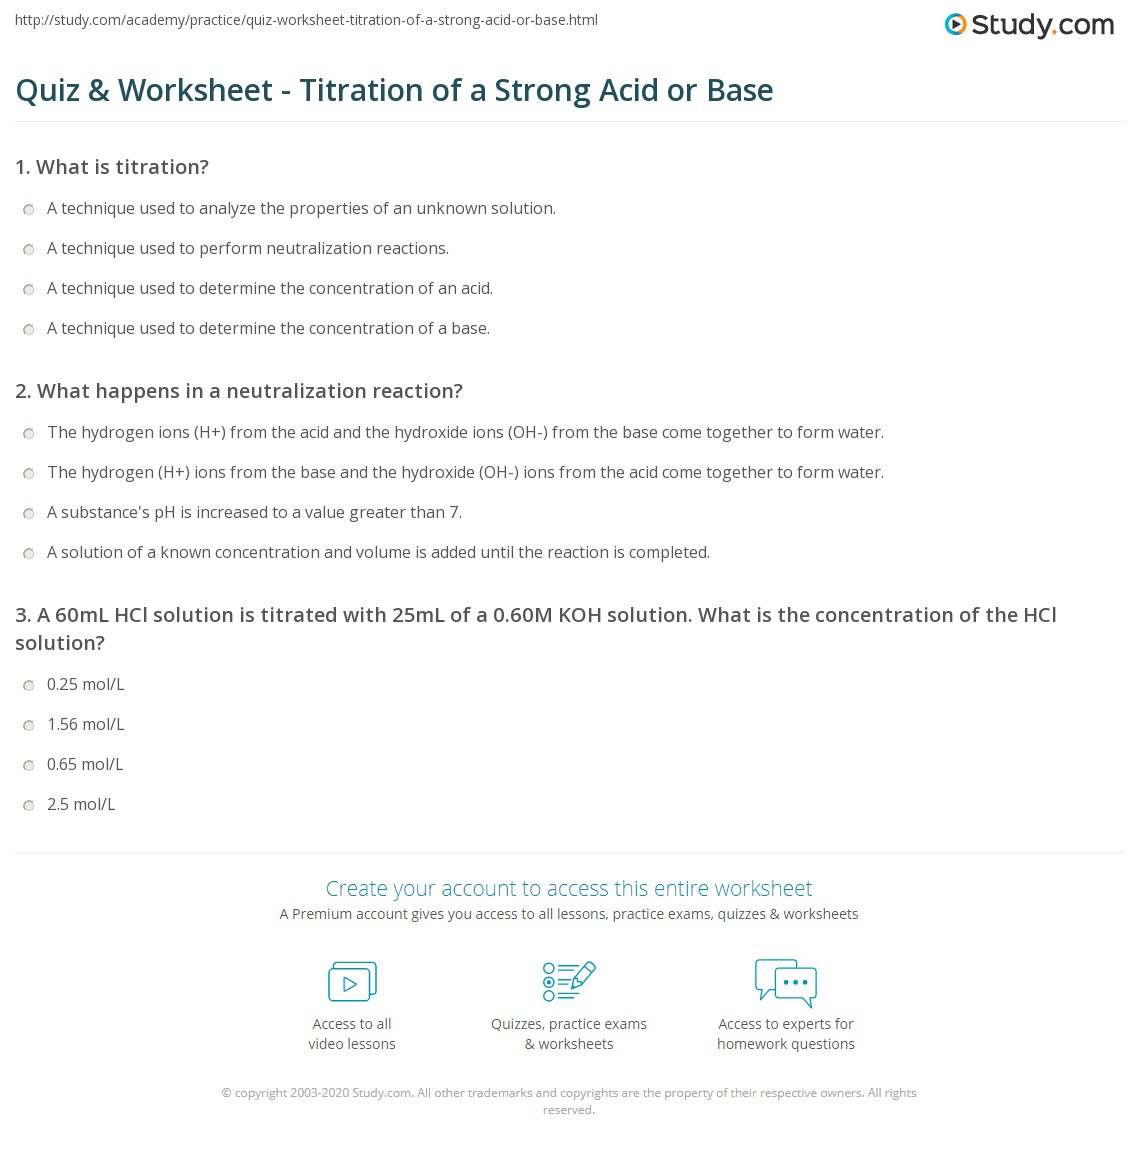 Quiz Worksheet Titration of a Strong Acid or Base – Acid and Bases Worksheet Answer Key